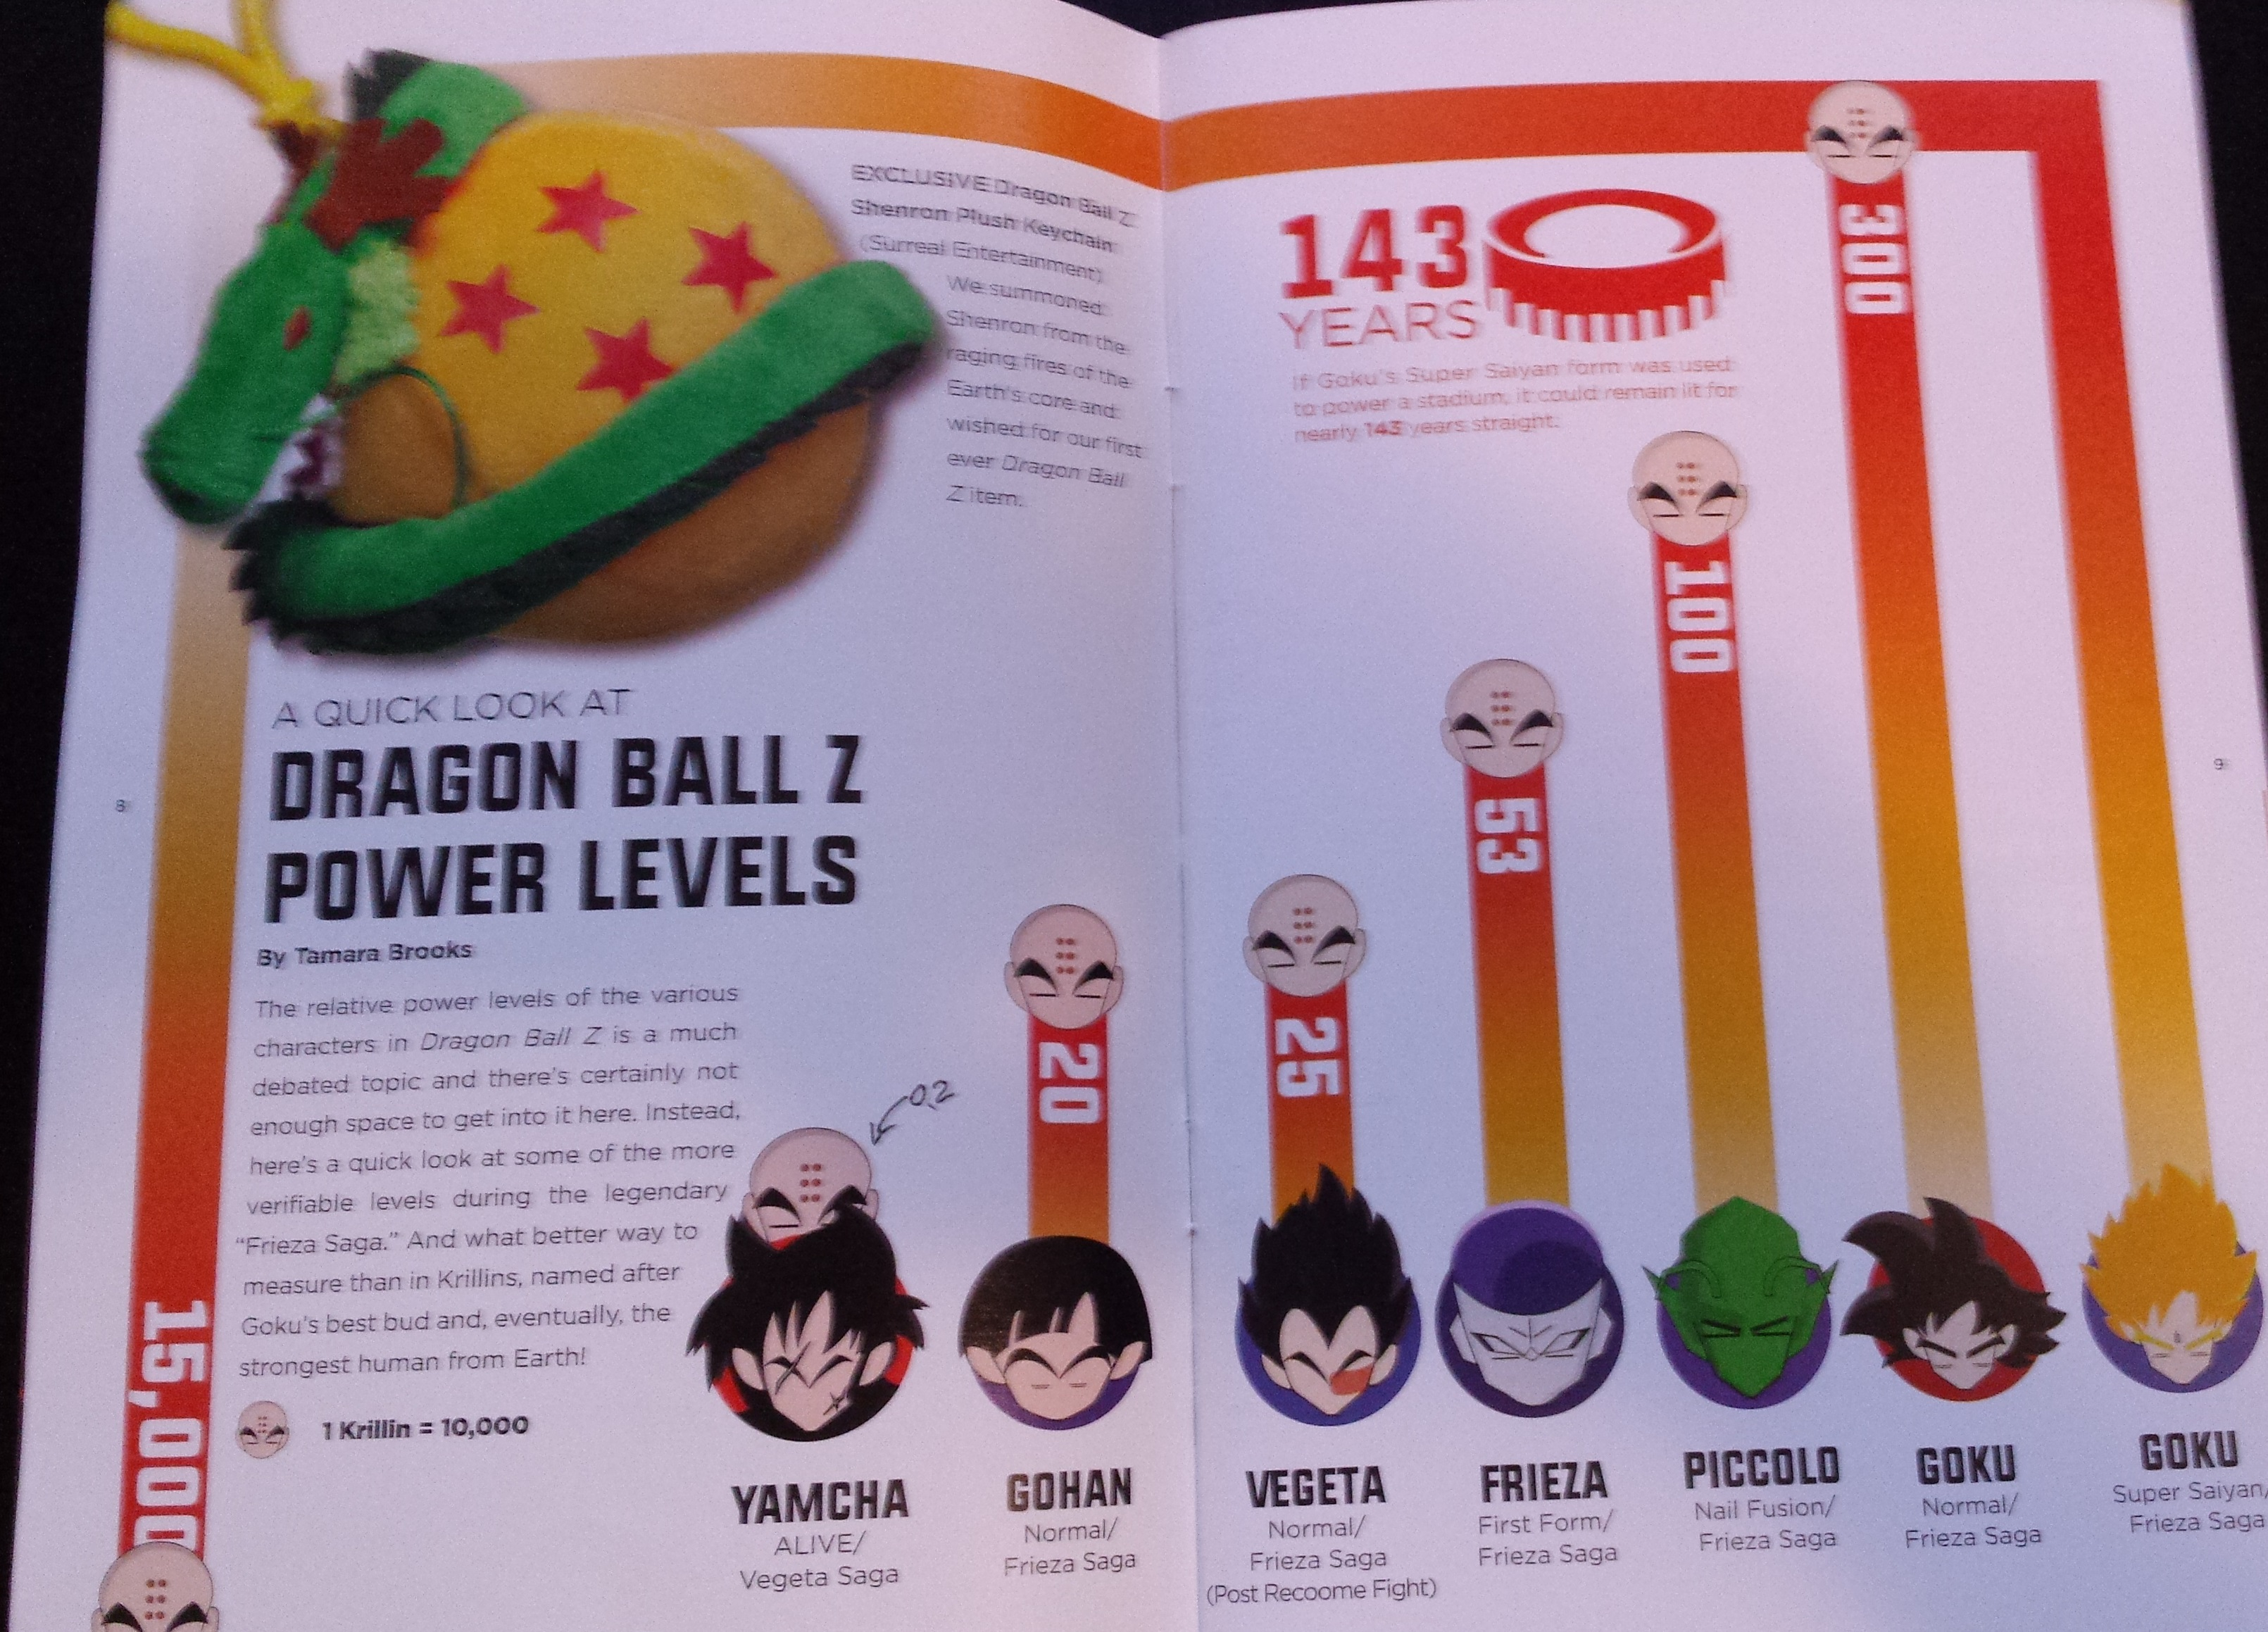 May's loot crate, power, dragon ball z power levels